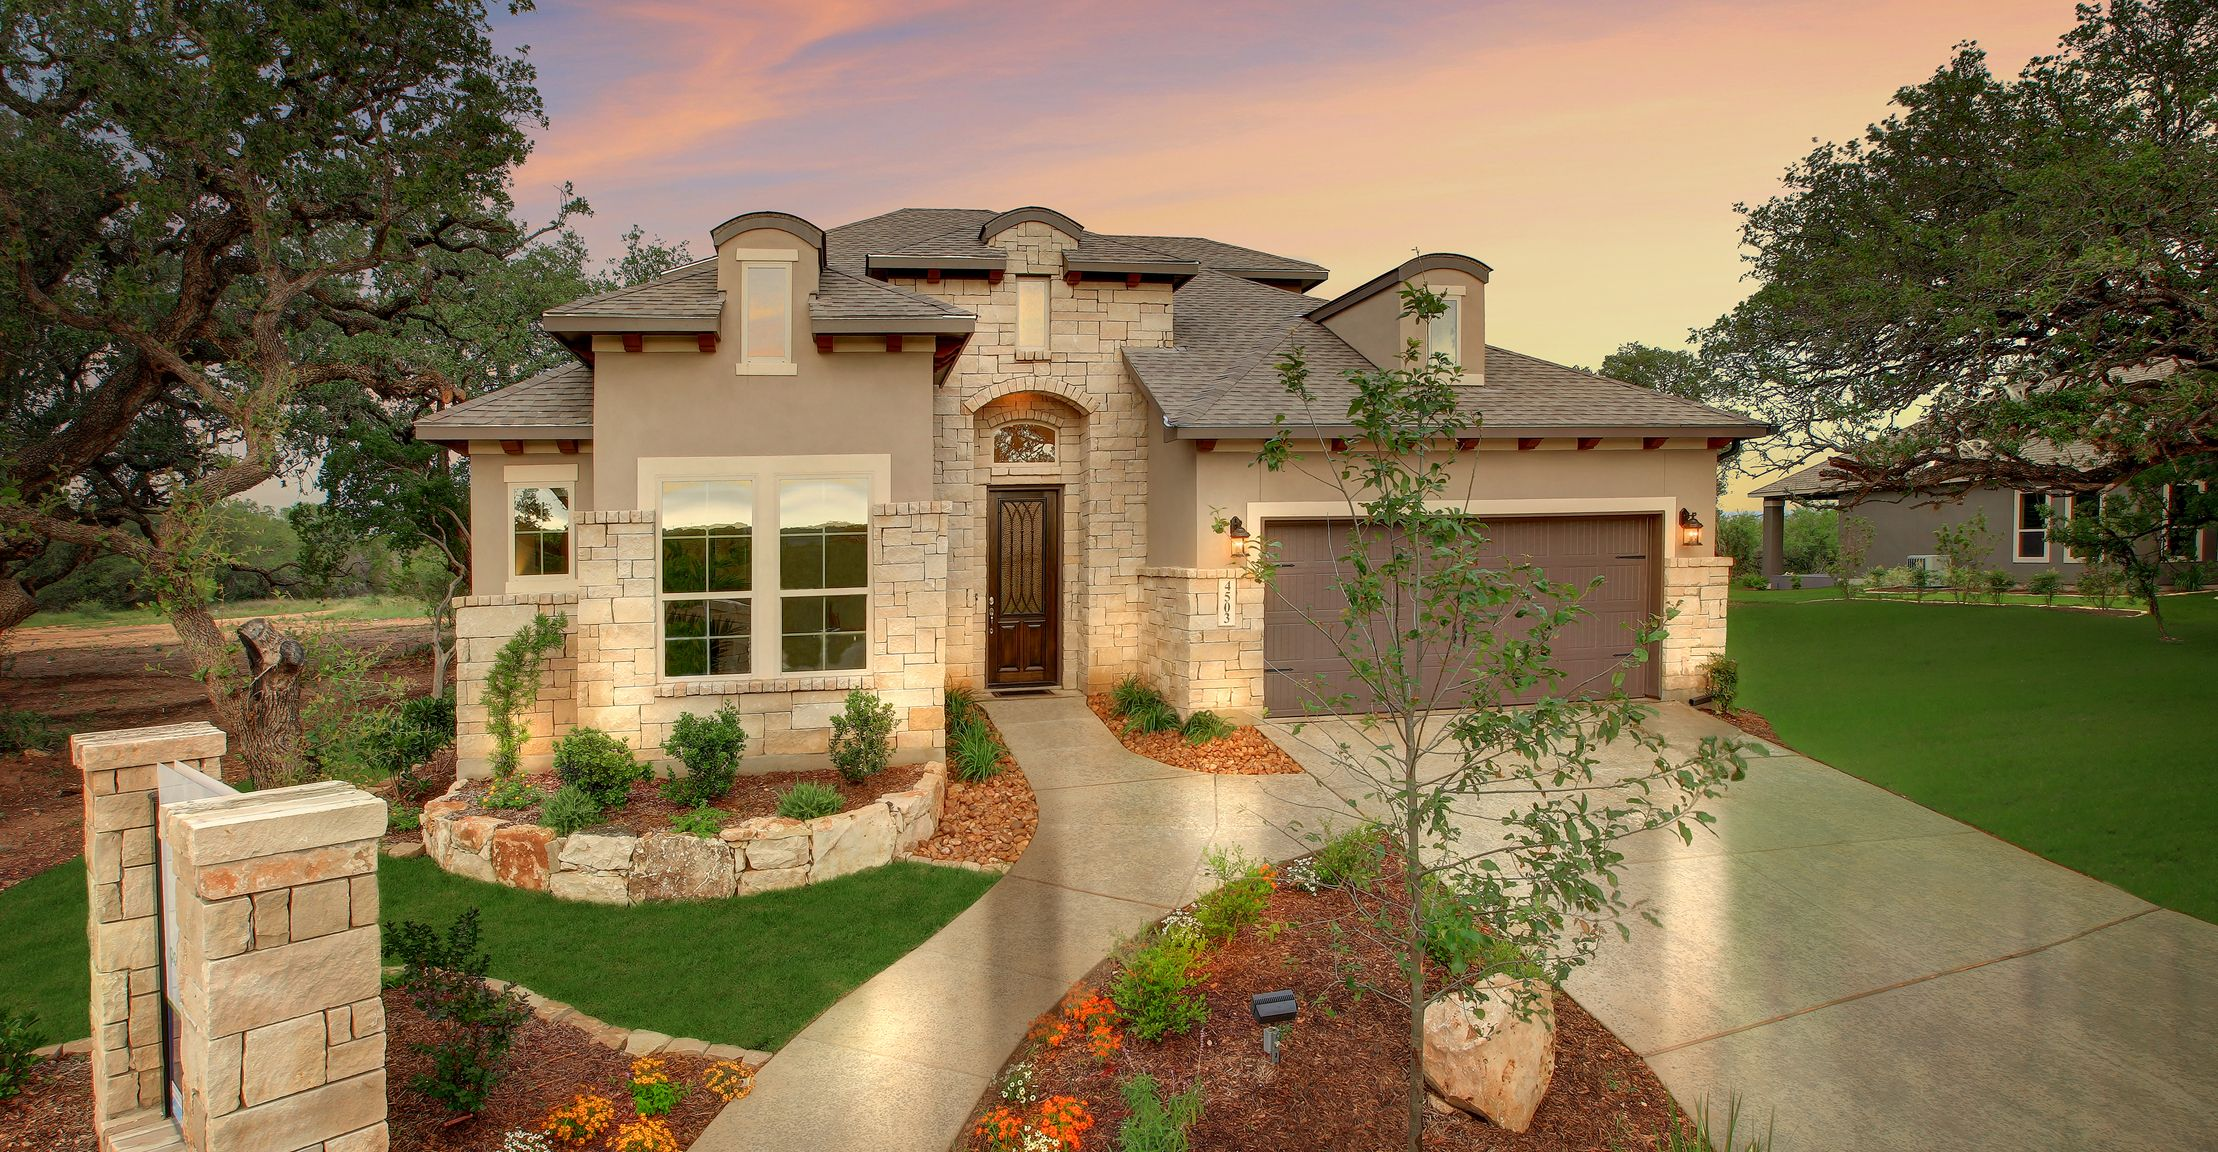 New Imagine Homesu0027 Model Home In Amorosa In Cibolo Canyons. 4503 Amorosa  Way San